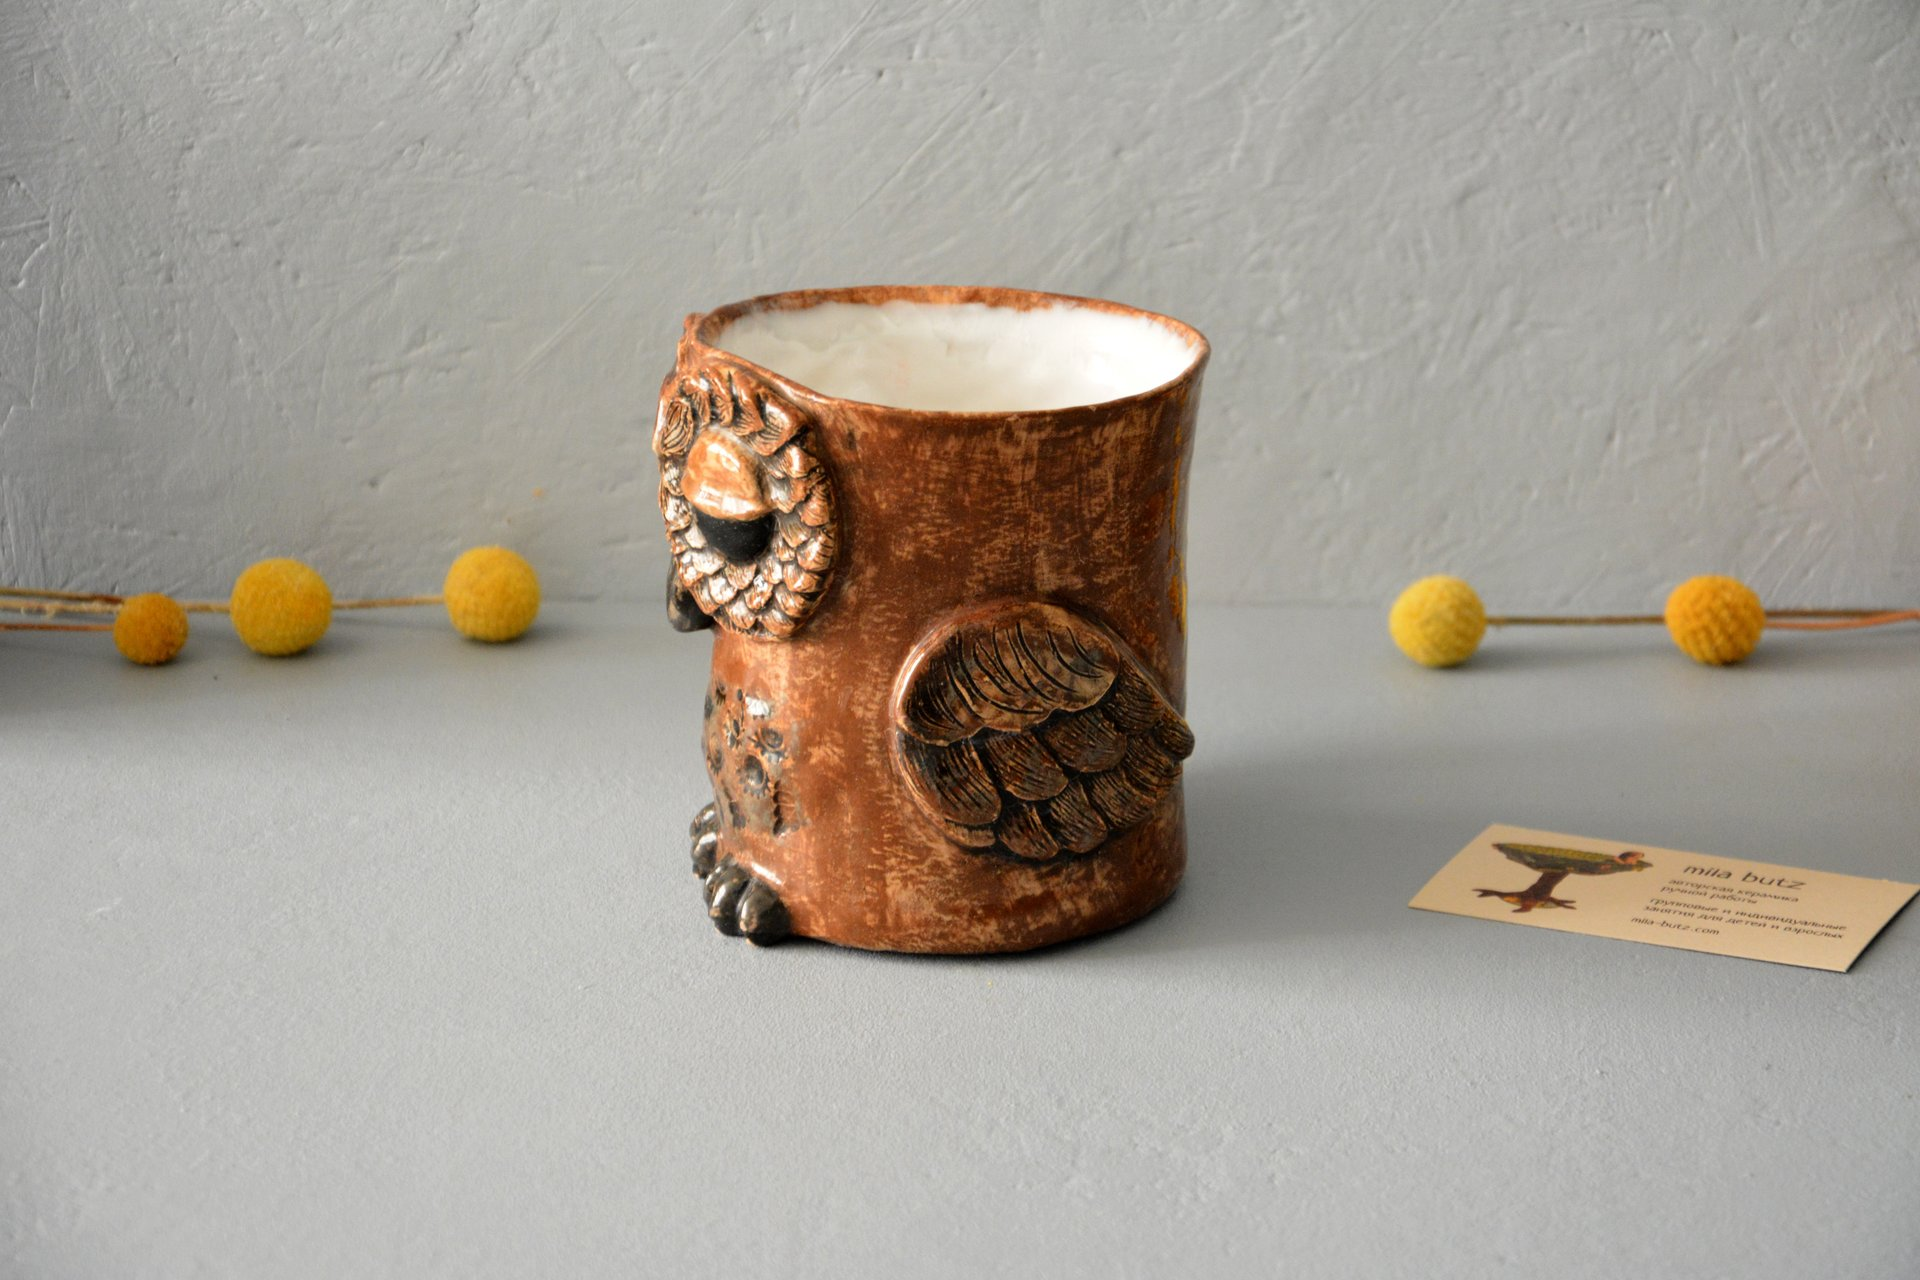 Owl is a large cup, аmount - 0.5 l,  height - 14 cm, diameter - 10 cm, photo 3 of 6.